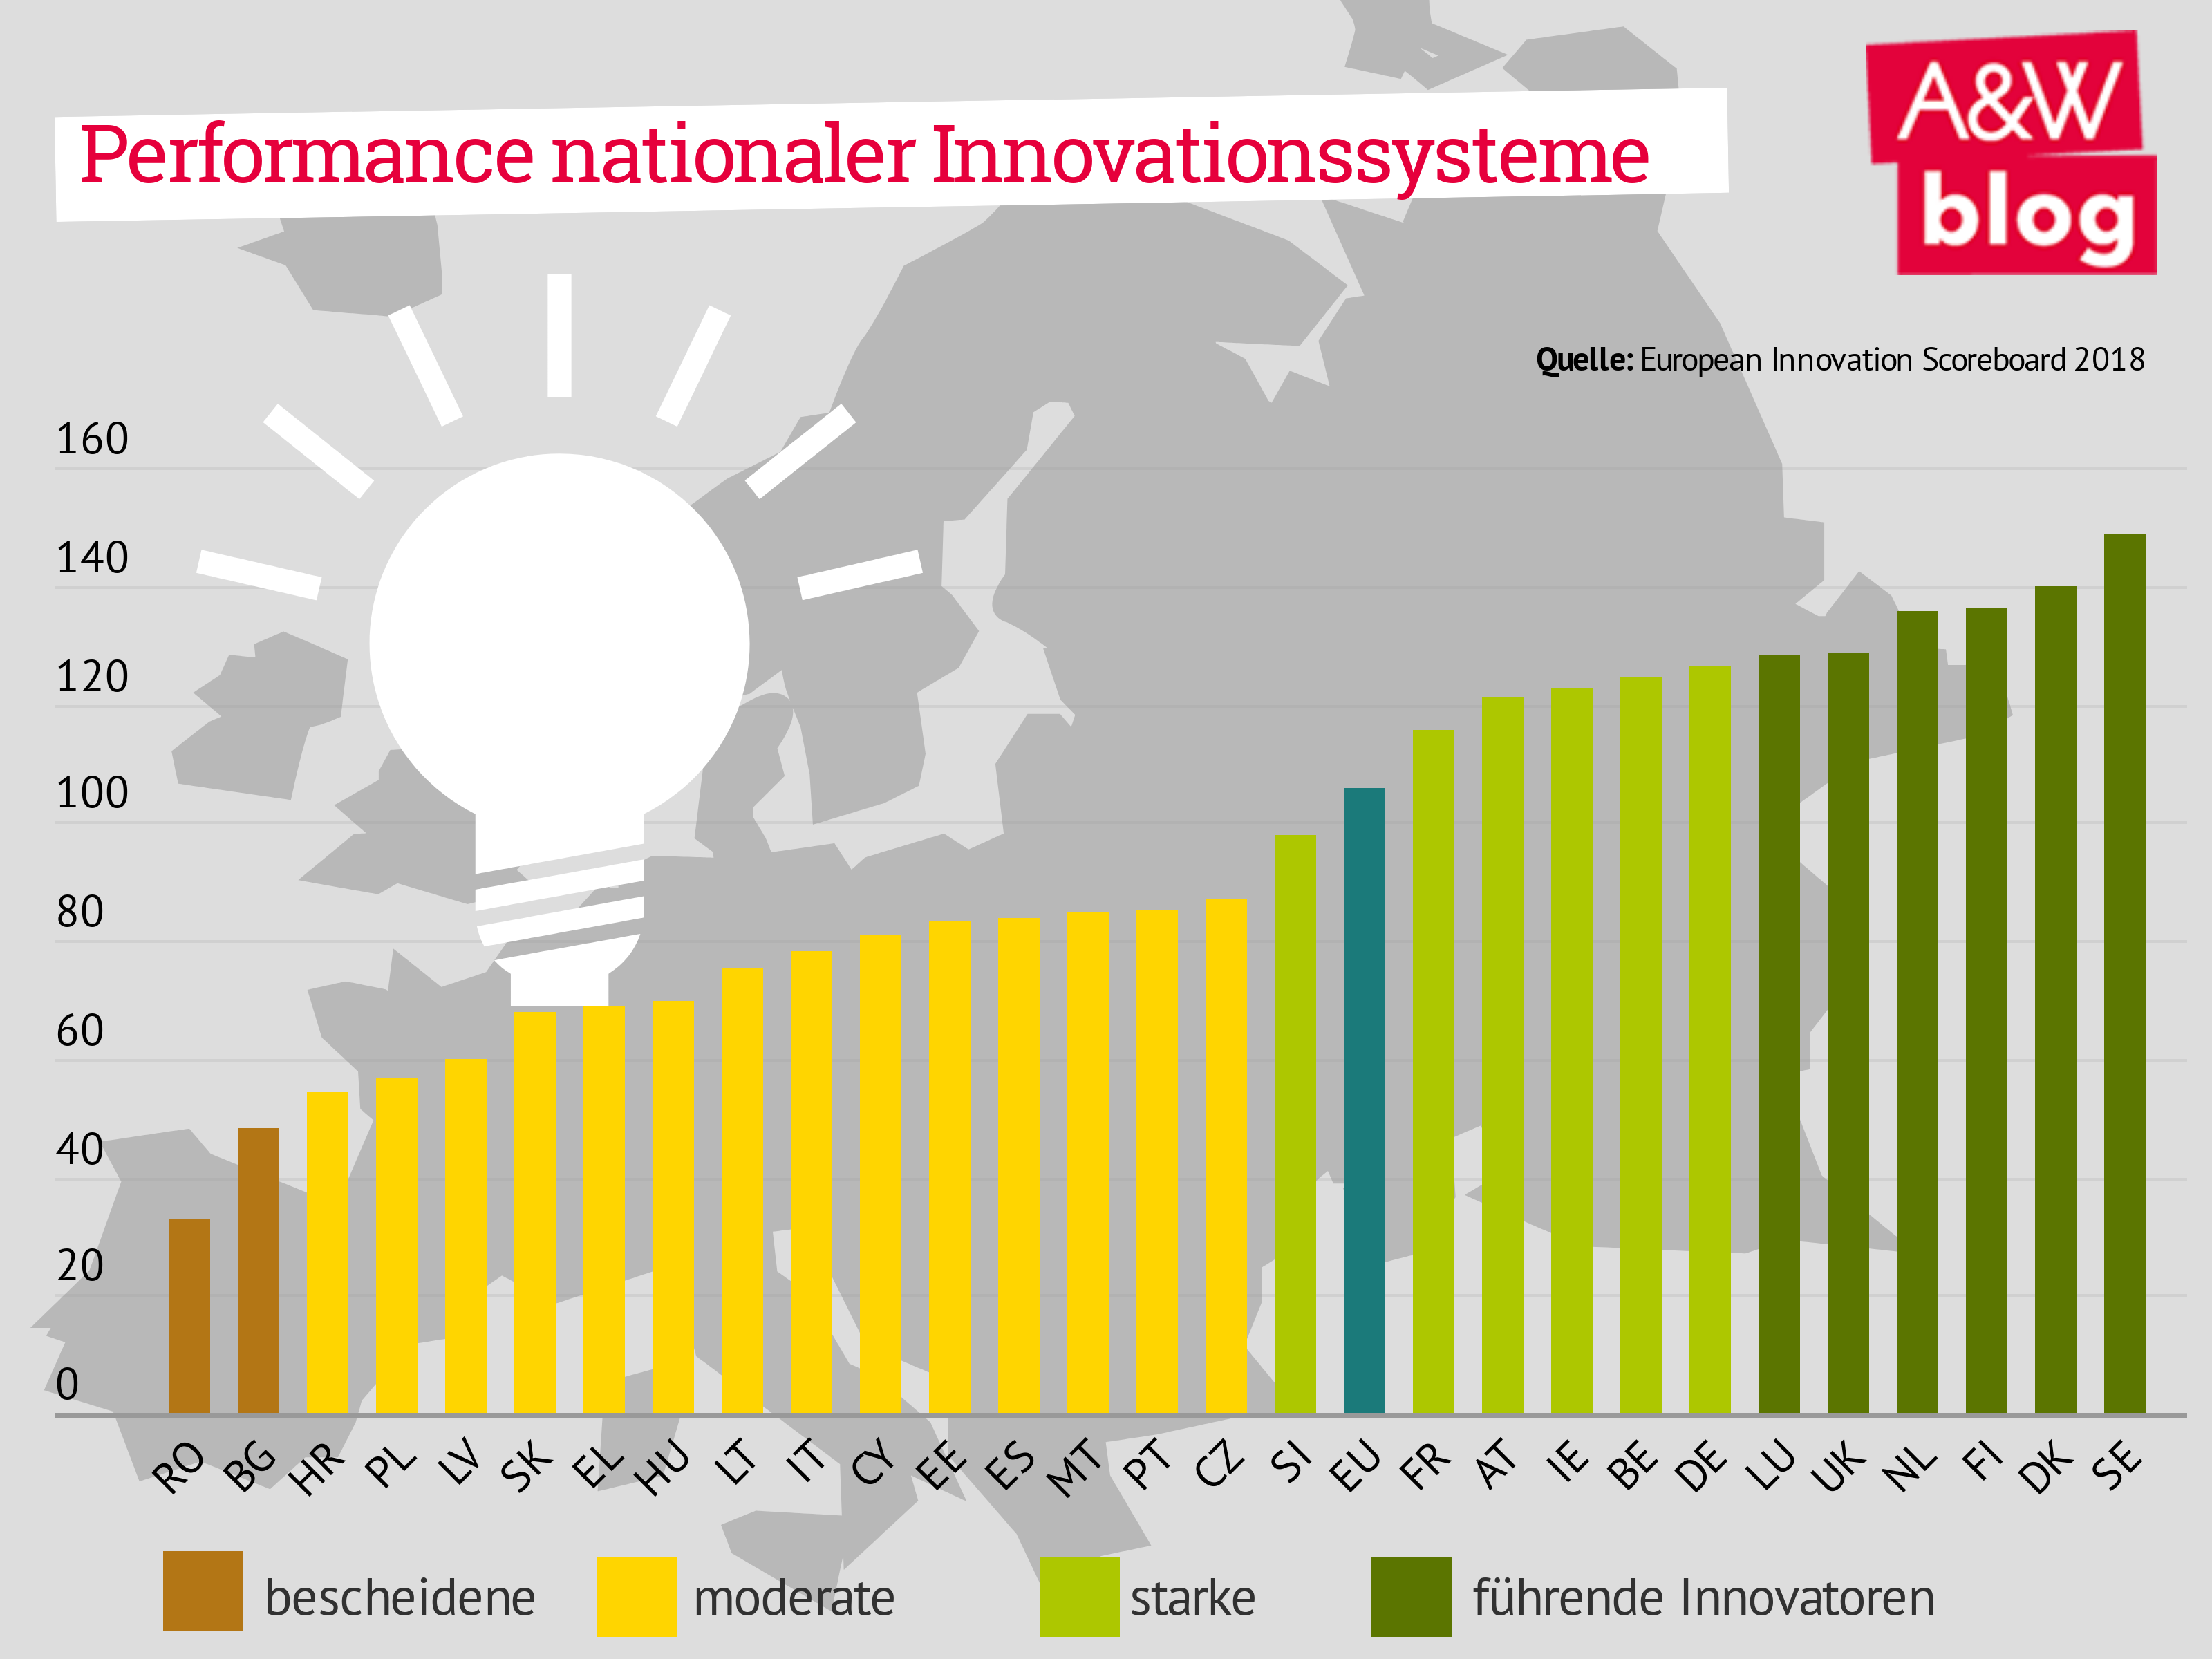 Performance nationaler Innovationssysteme